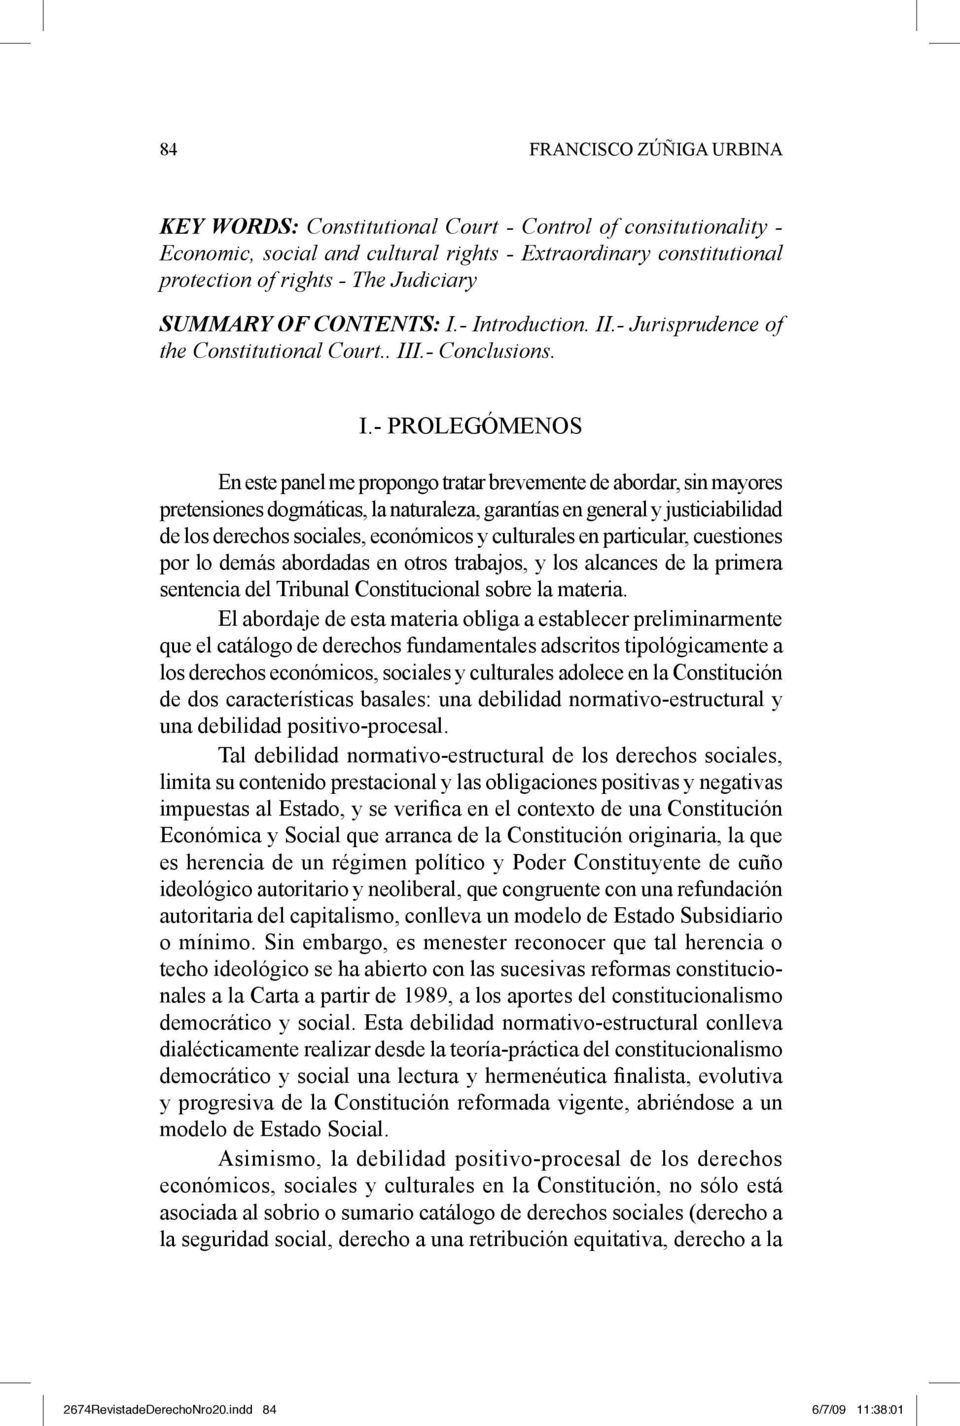 - Introduction. II.- Jurisprudence of the Constitutional Court.. III.- Conclusions. I.- PROLEGÓMENOS En este panel me propongo tratar brevemente de abordar, sin mayores pretensiones dogmáticas, la